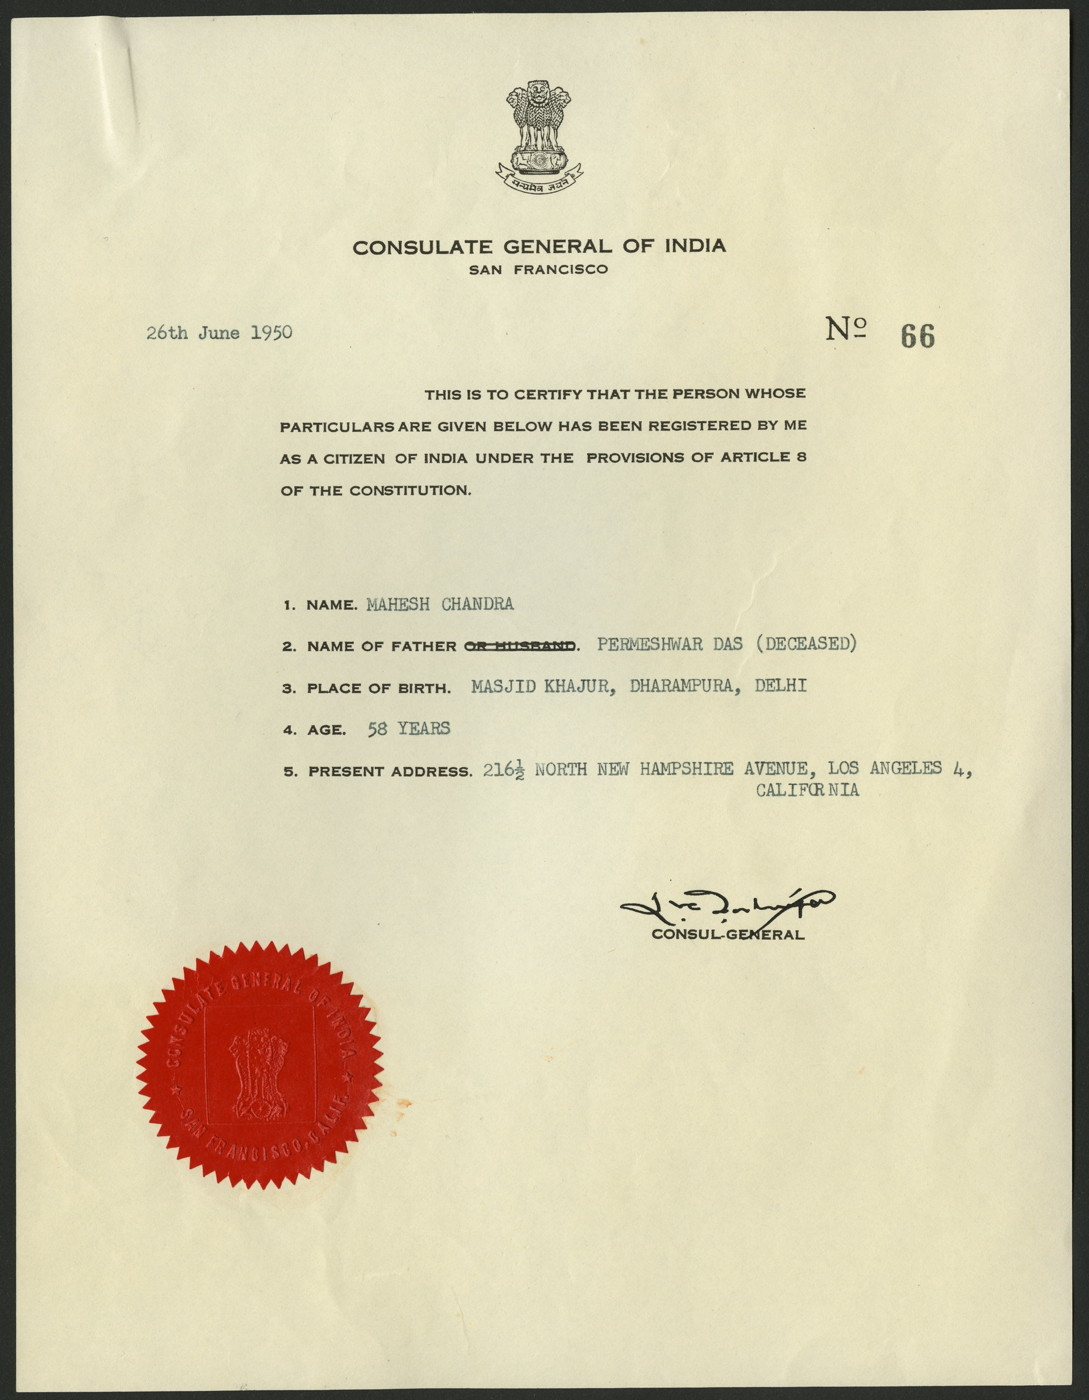 Certification of indian citizenship for mahesh chandra south click xflitez Images